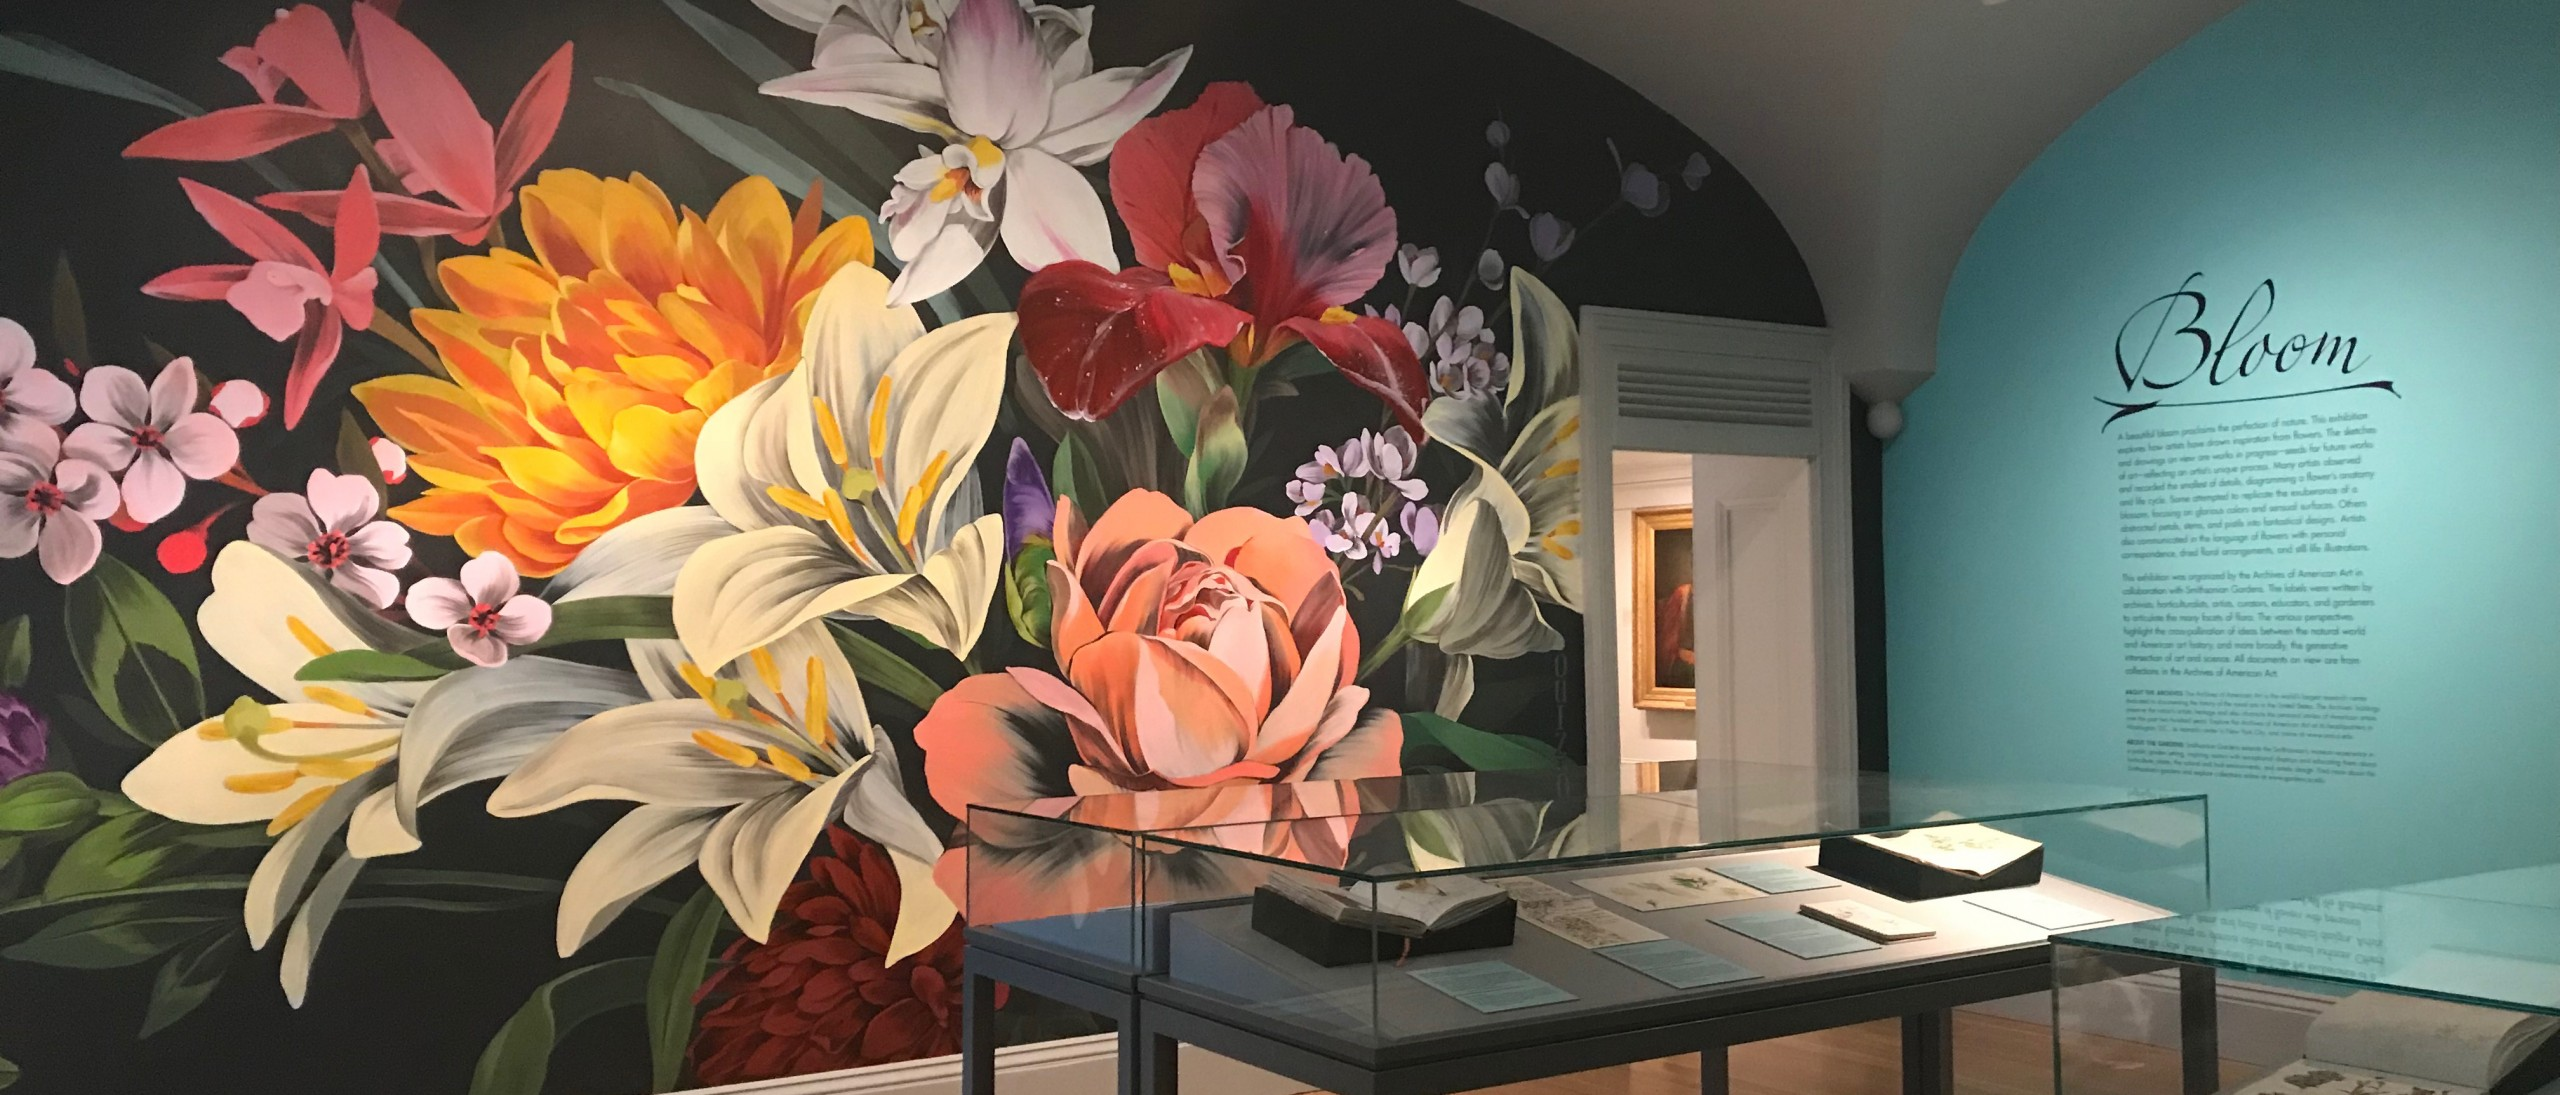 Painted mural of multicolored flowers in exhibit room